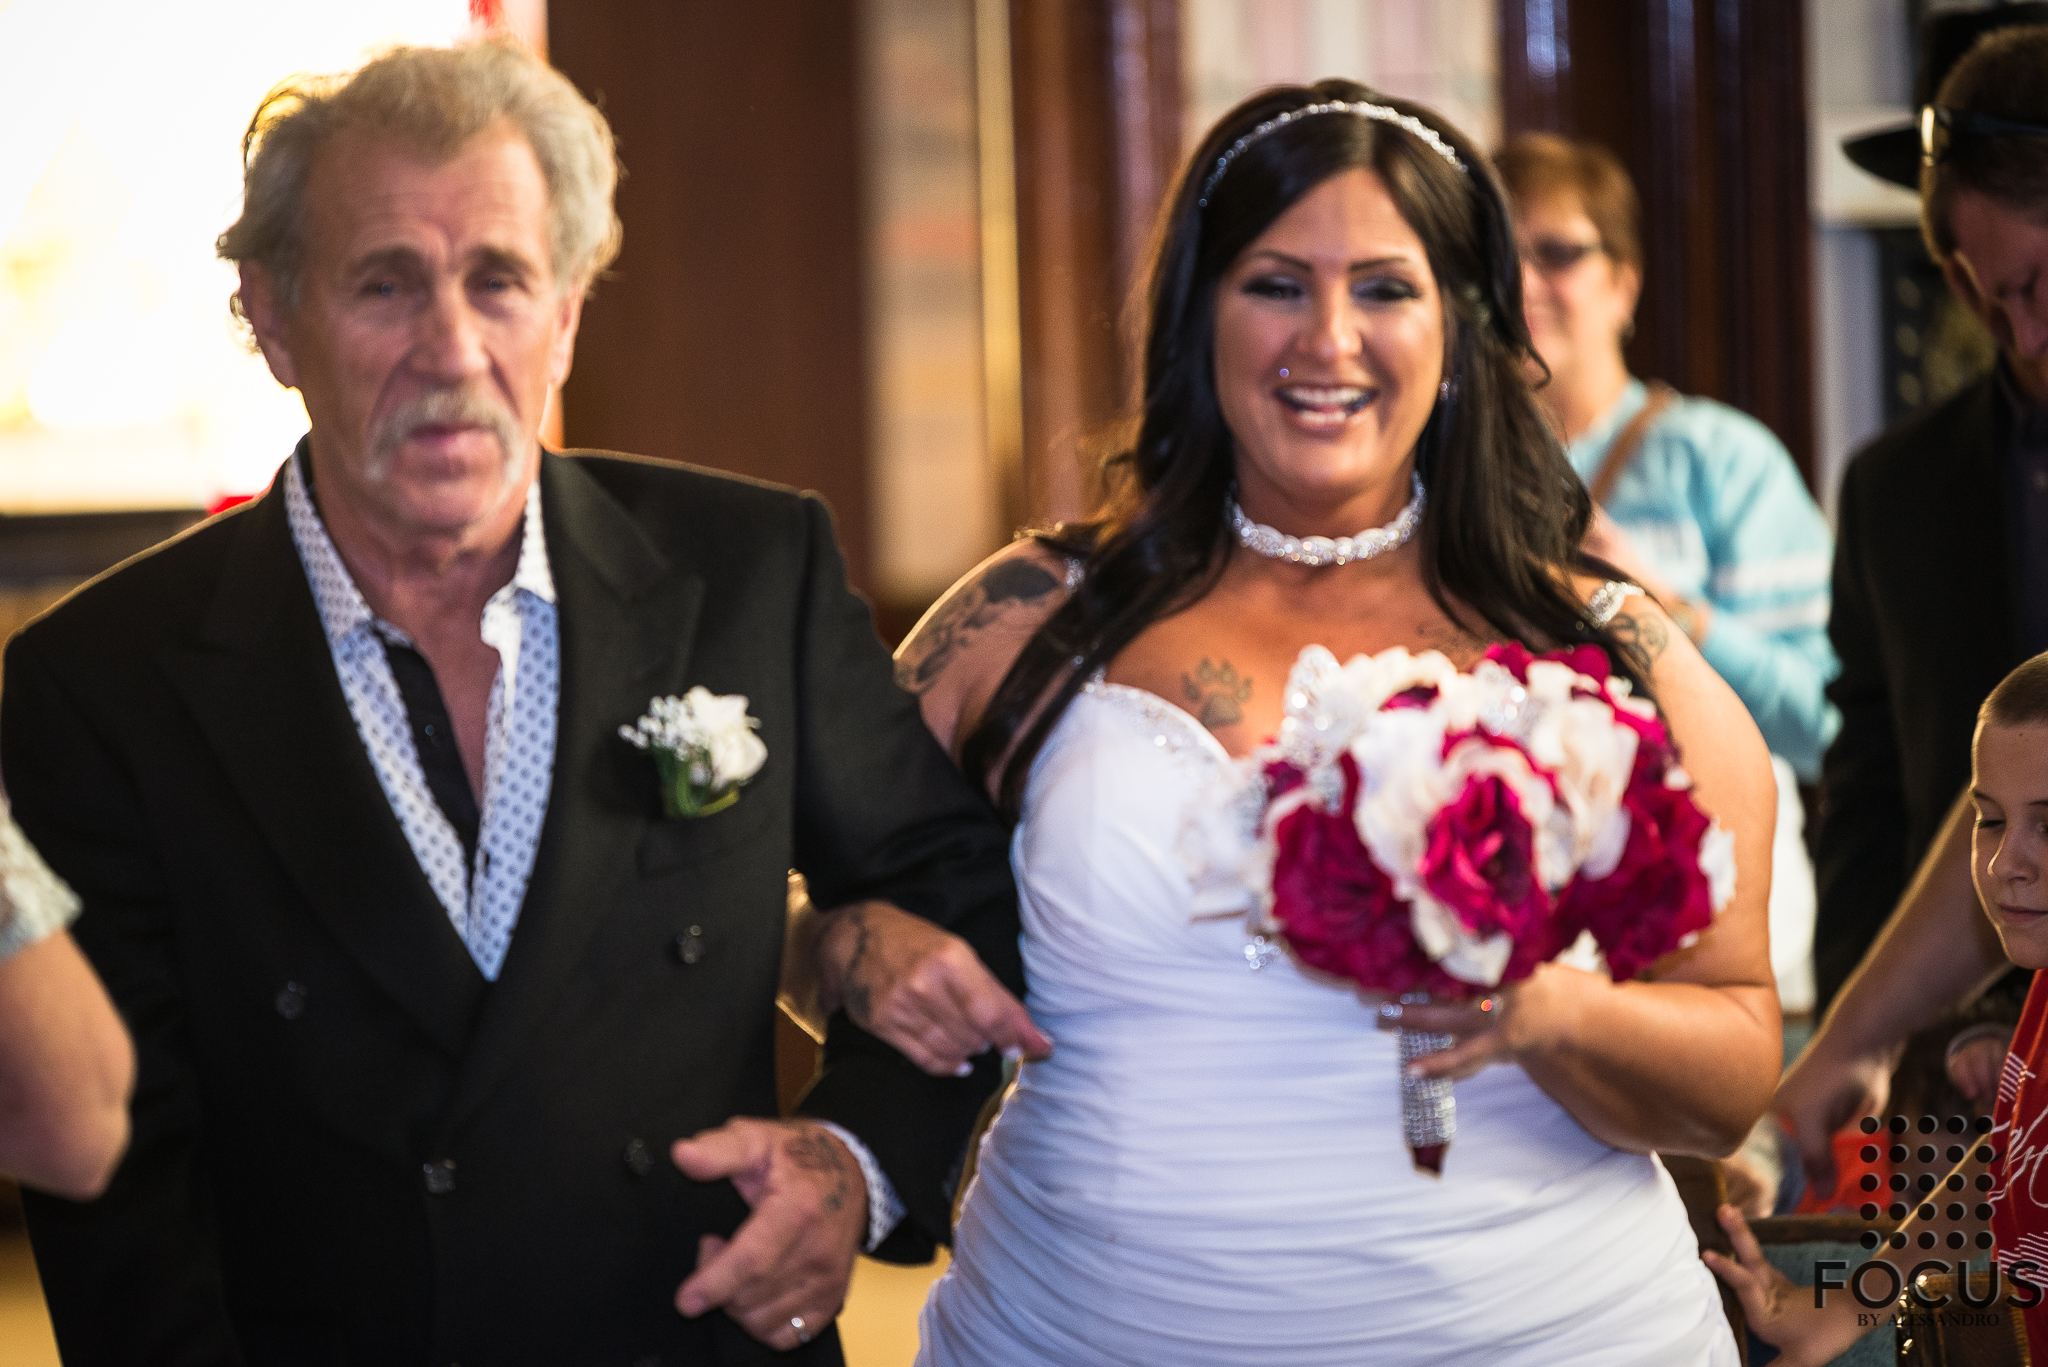 Denise and Dave wedding 2017 (215 of 785).jpg